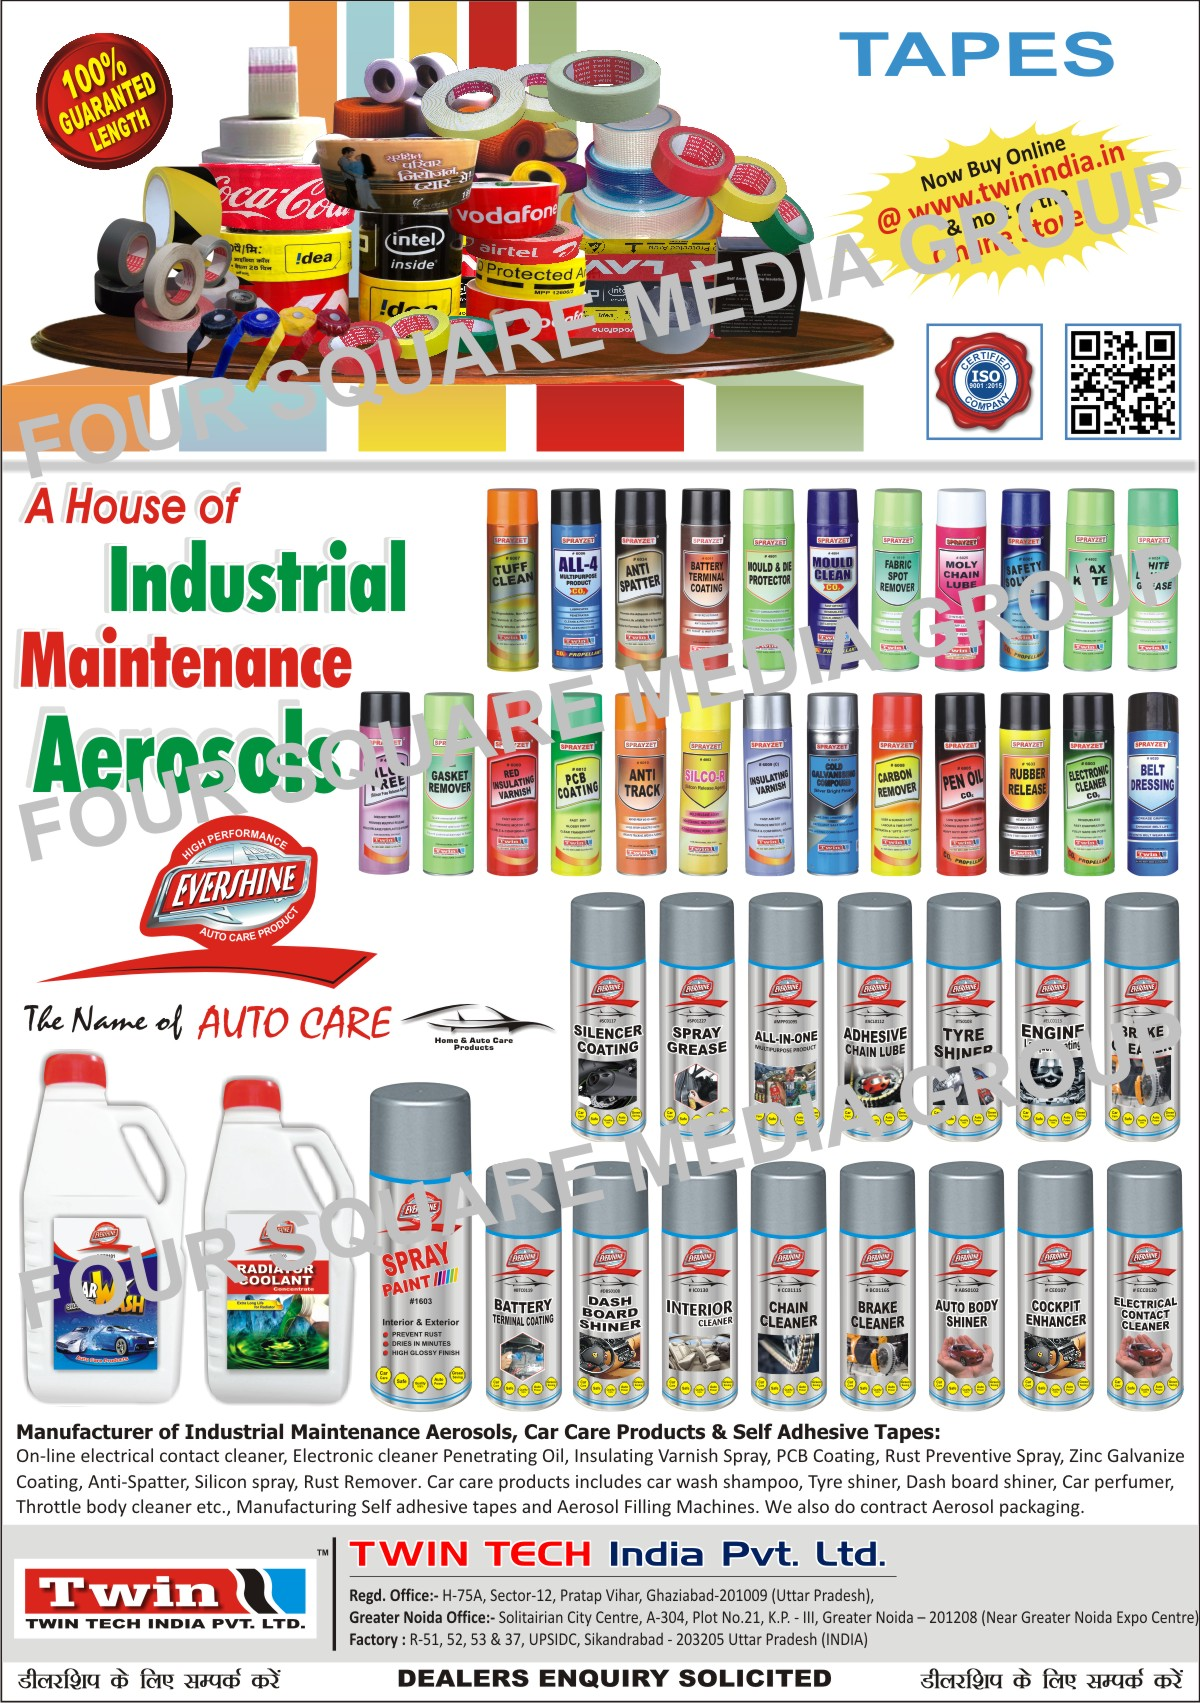 Automotive Care Products, Car Care Products, Self Adhesive Tapes, Industrial Maintenance Aerosols, HACKER Mosquito Vaporizer, Dashboard Shiner, Engine Lacquer Coating, Auto Body Shiner, Adhesive Chain Lube, Silencer Coating Spray, Tyre Shiner, Alloy Wheel Cleaner, Automotive Battery Terminal Coating , Automotive Electrical Cleaner, Brake Cleaner, Online Electrical Contact Cleaner, Electronic Cleaner Penetrating Oil, Insulating Varnish Spray, Printed Circuit Board Coating Aerosol, Synthetic Rubber Coating Galvanize Aerosol, Brass Coating Aerosol, SS Coating Aerosol, Rust Preventive Spray, Zinc Galvanize Coating, Anti Spatter, Silicon Spray, Rust Remover, Car Wash Shampoo, Dashboard Shiner, Car Perfumer, Throttle Body Cleaner, Aerosol Packaging Service, Aerosol Filling Machine, Automotive Air Freshener, Car Perfume, Booster Pump for Aerosol Industry, Crimping Machine for Aerosol Industry, Pneumatic De Crimper for Aerosol Industry, Aerosol Machines, Gas Filling Machine for Aerosol Industry, Liquid Filling Machine for Aerosol Industry, Hand Operated Crimping Machine for Aerosol Industry, De Crimping Machine for Aerosol Industry, Deodorising Column for Aerosol Industry, Mixer machine for Aerosol Industry, Fabric Spot Remover, Mould Cleaners, Wire Rope Lubes, Carbon Remover, Mould and Die Protectors, Red Insulating Varnish, Electronic Cleaner Co2, Pen Oil, Air Drying Paints, Car Polish, Glass Cleaner Liquid, Injection Moulding Spray, Injection Molding Spray, Tuff Cleaners, Multipurpose Product CO2, White Lithium Grease, Silco Free Spray, Moly Chain Lubes, Safety Solvent CO2, Wax Kote, Silco R, Silicon Release Agent Spray, Cold Galvanising Compound, Gasket Removers, PCB Coating Spray, Anti Track Spray, Rubber Release Spray, Belt Dressing Spray, Home Car Products, Furniture Polish, Treadmill Lubricants, Floor Sanitizers, Car Deo, Radiator Coolants, Interior Cleaners, Chain Cleaners, Cockpit Enhancer